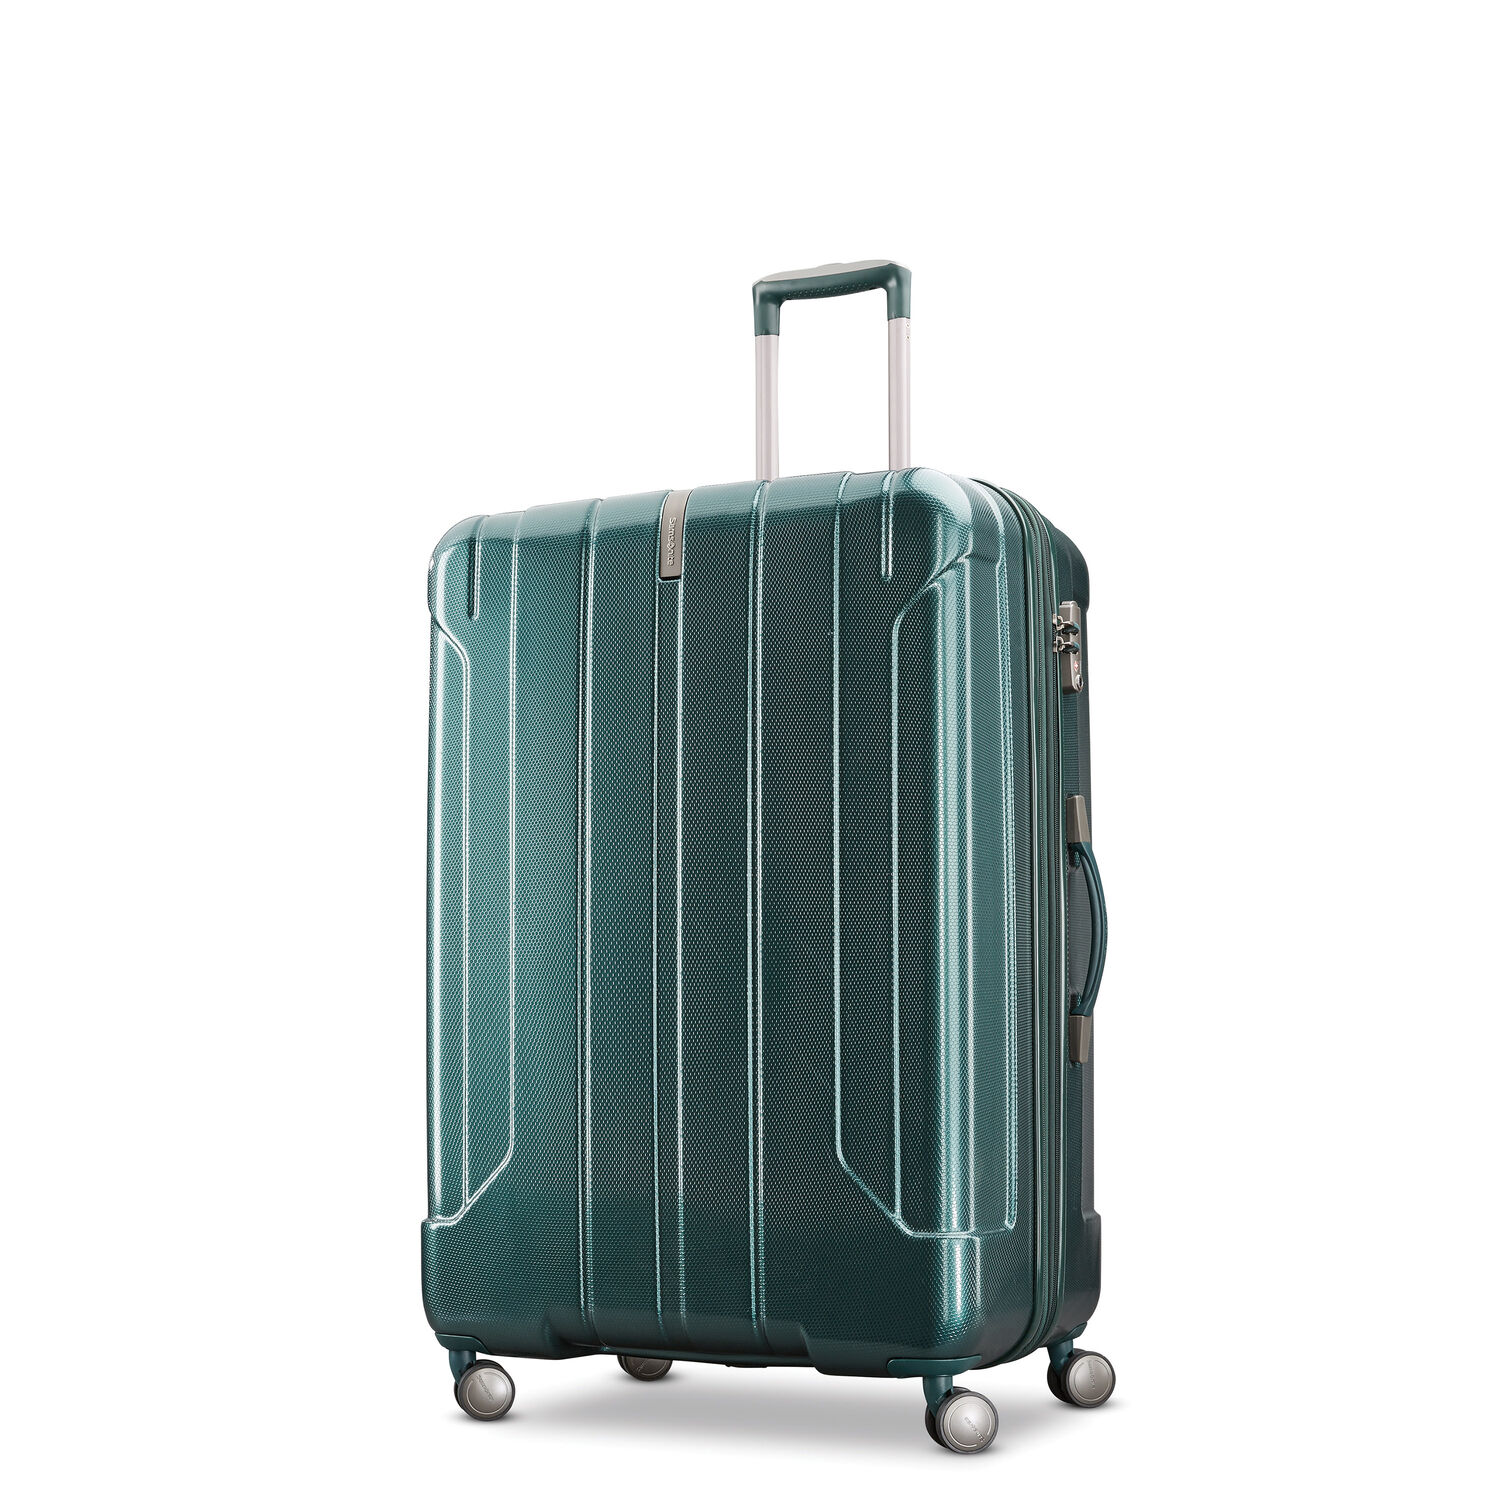 Samsonite On Air 3 Spinner Medium in the color Emerald Green.